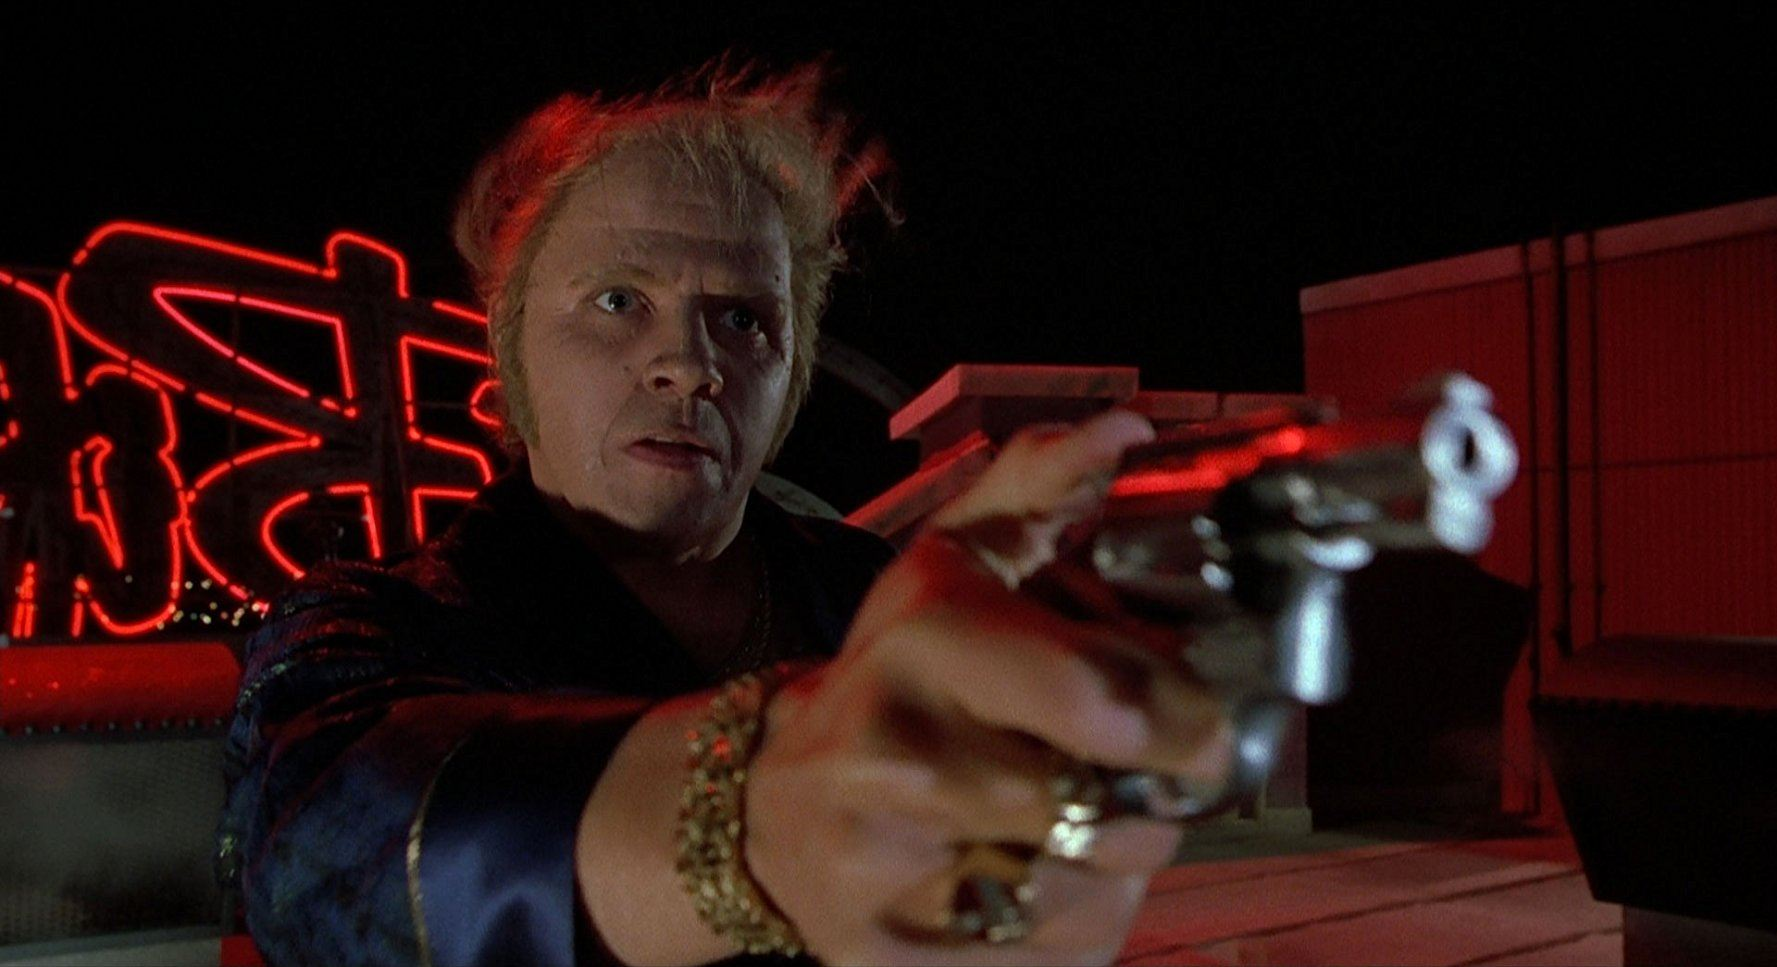 Thomas F. Wilson as Biff Tannen in Back to the Future Part II